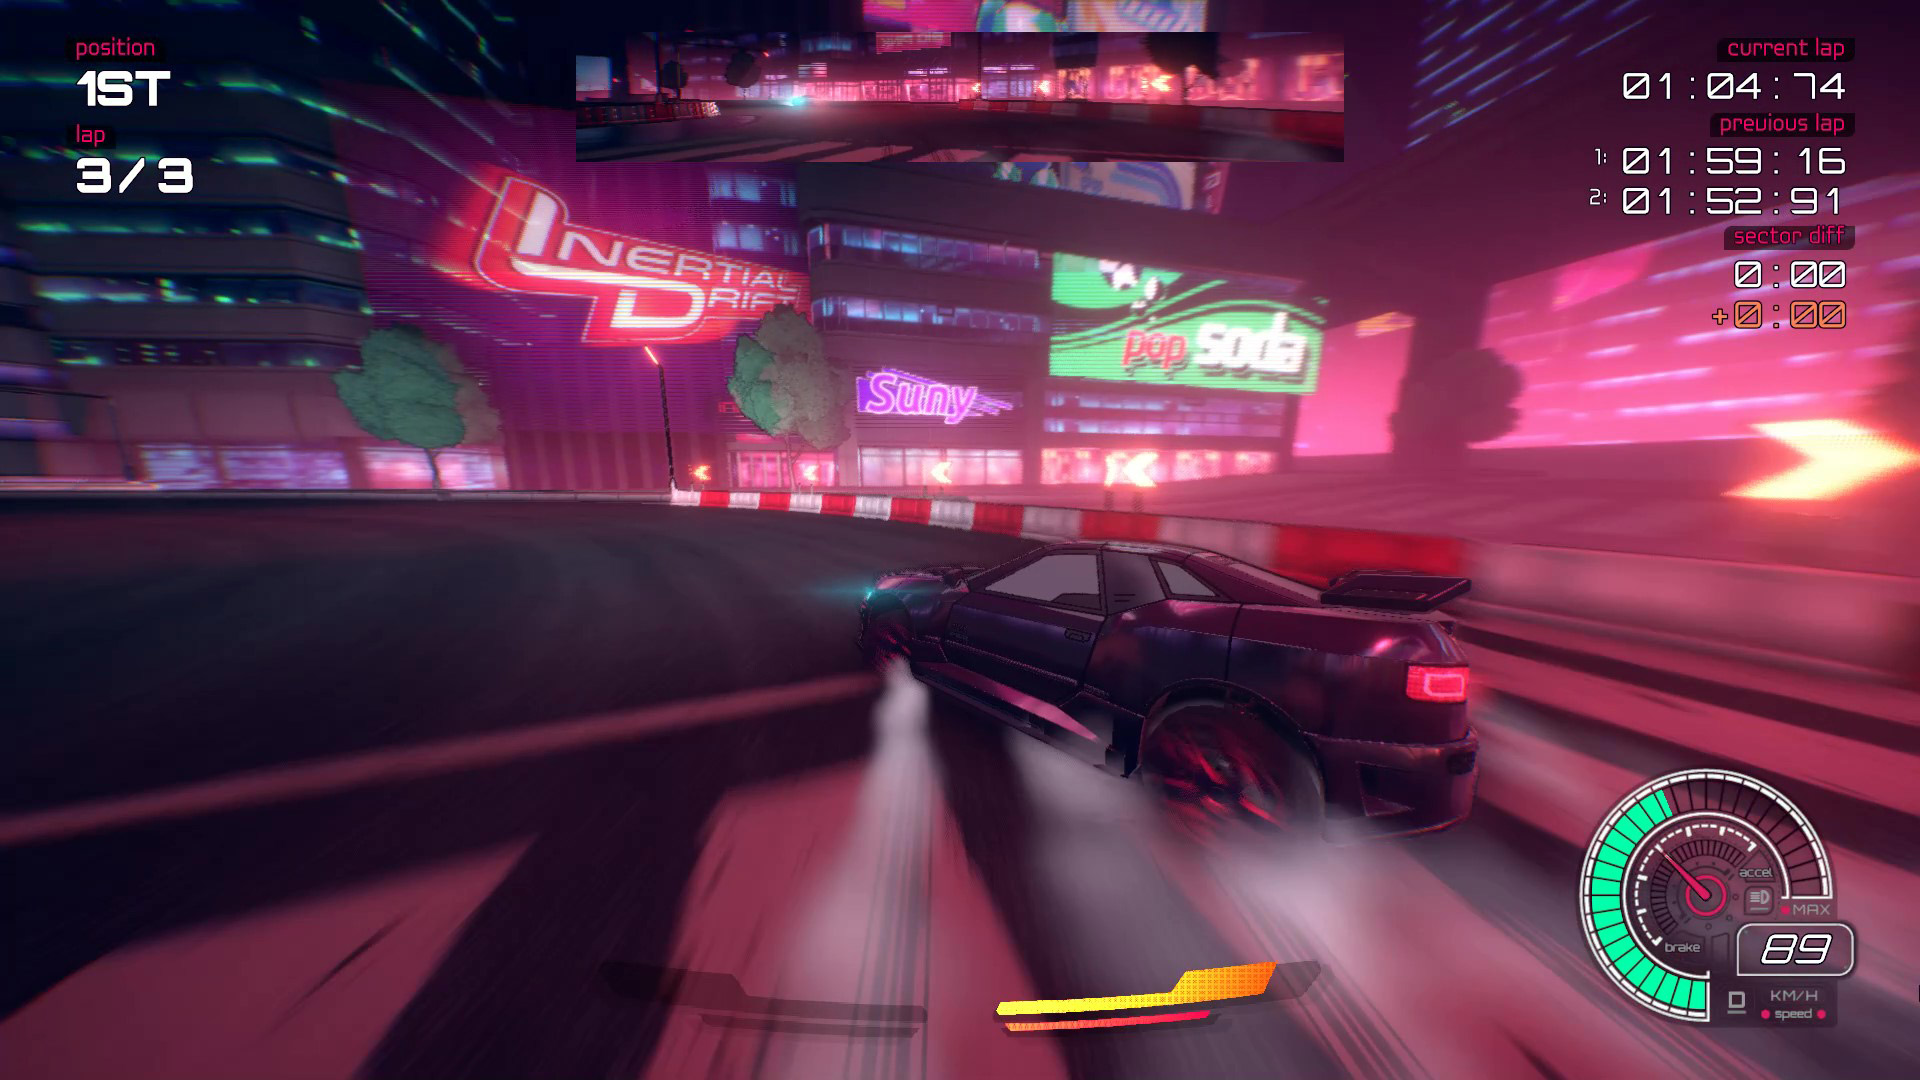 Inertial Drift Screenshot